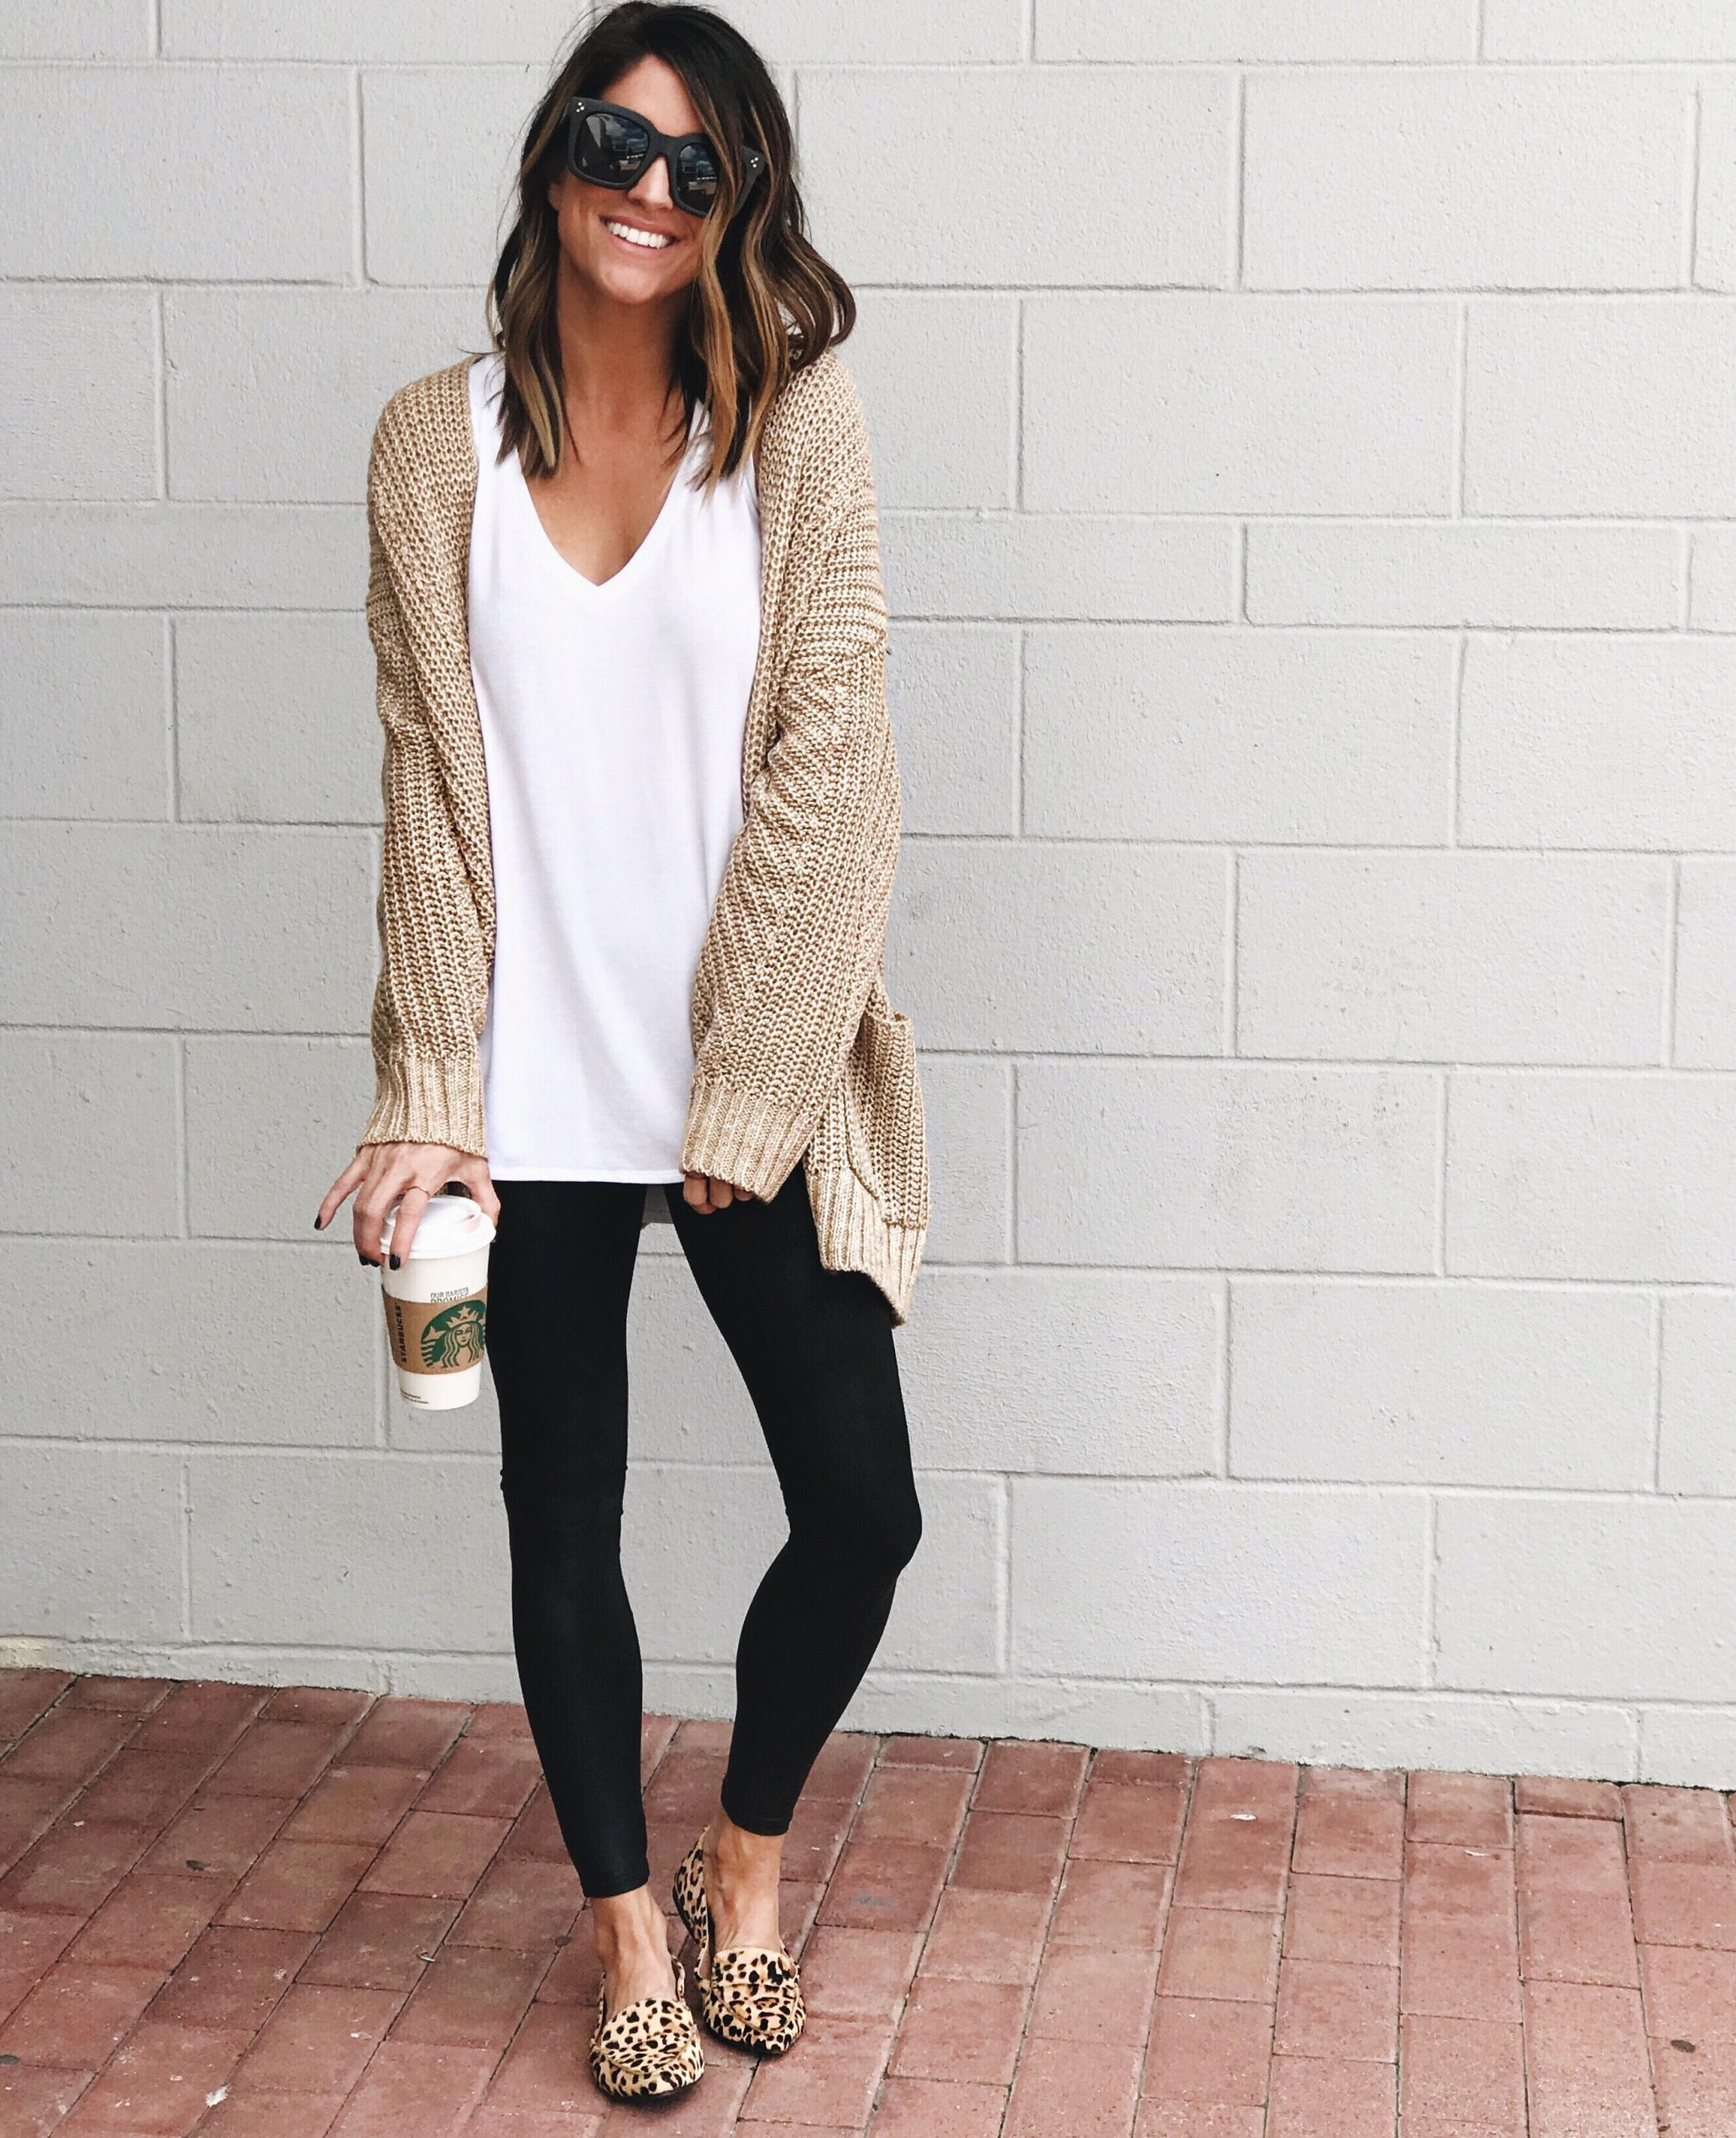 SEVENTY Ways To Style Leggings!